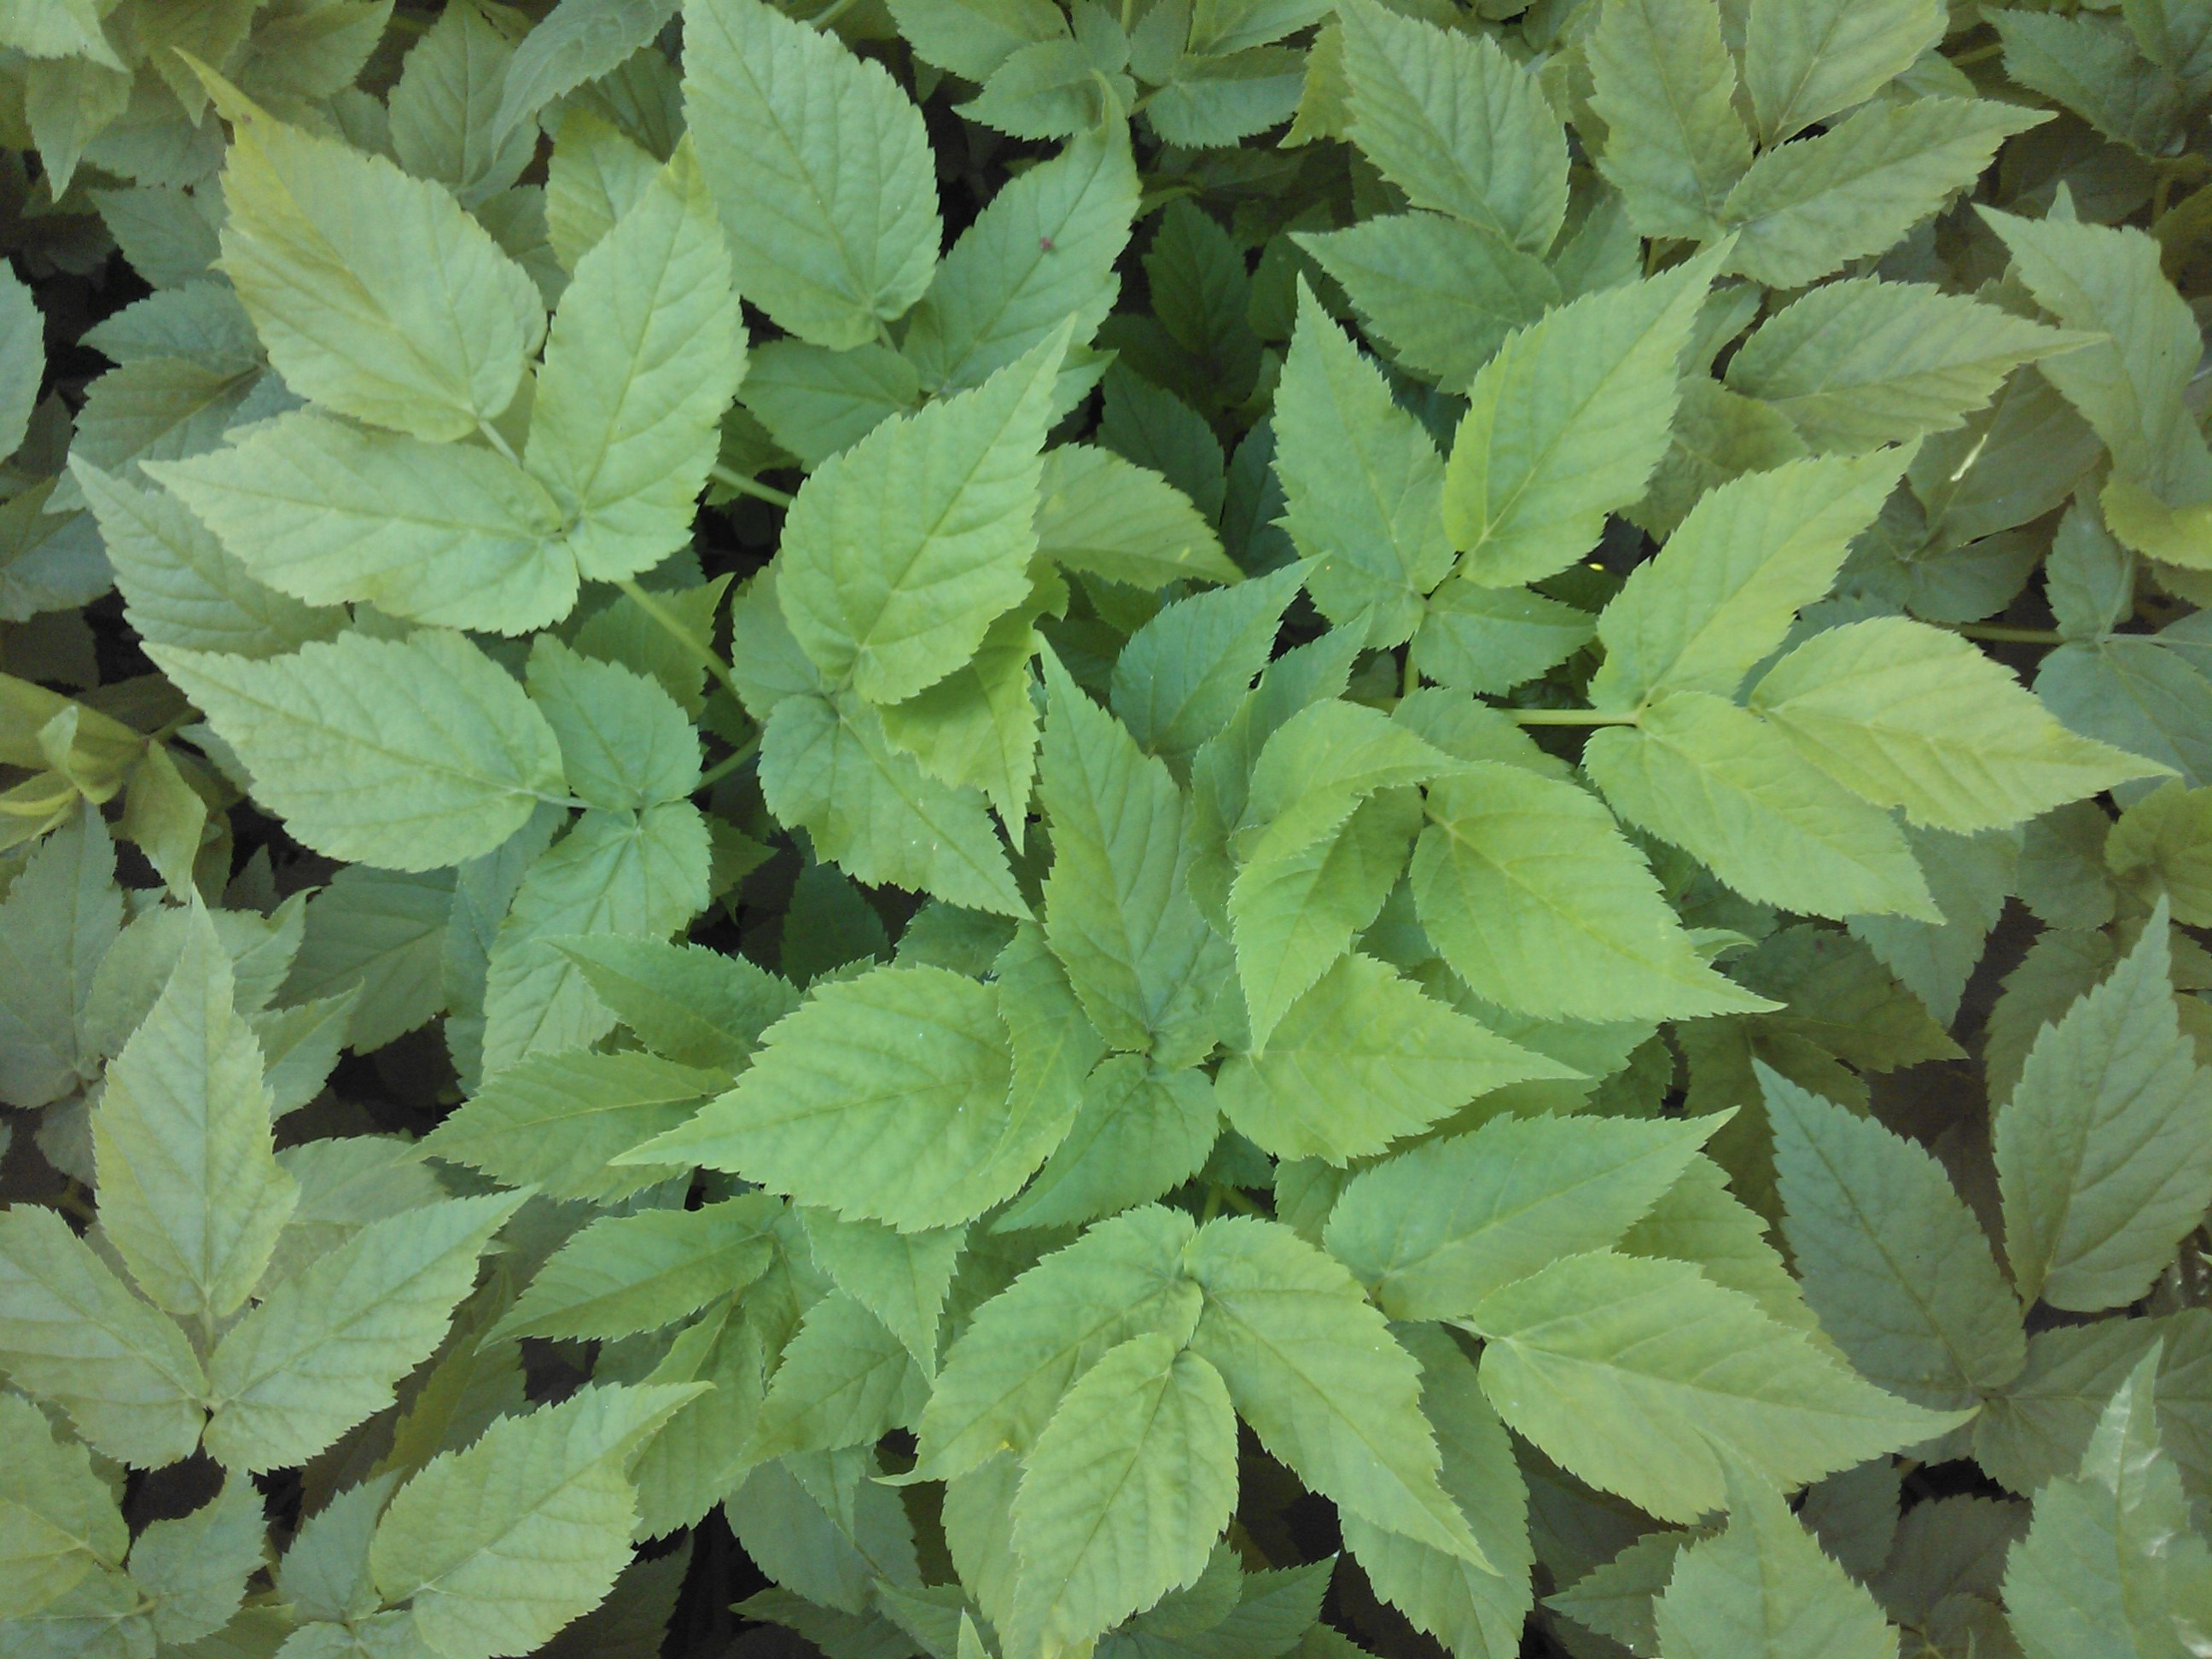 Weeds in flower beds with potato like roots - Ground Elder